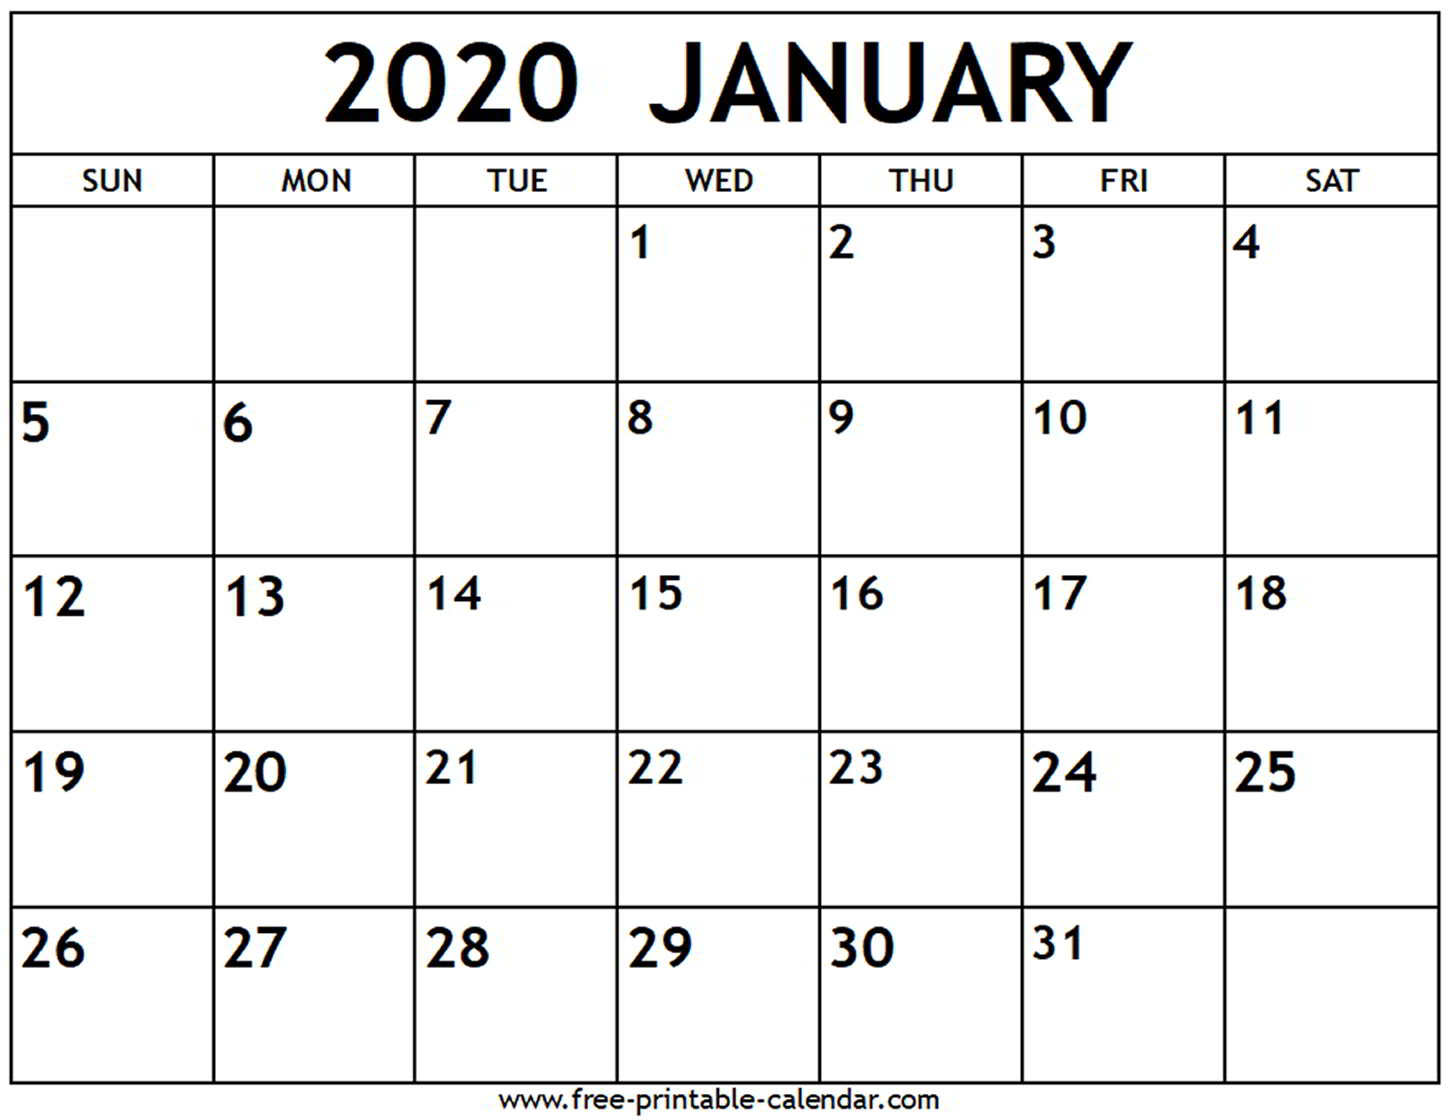 January 2020 Calendar - Free-Printable-Calendar inside October To December 2020 Calendar